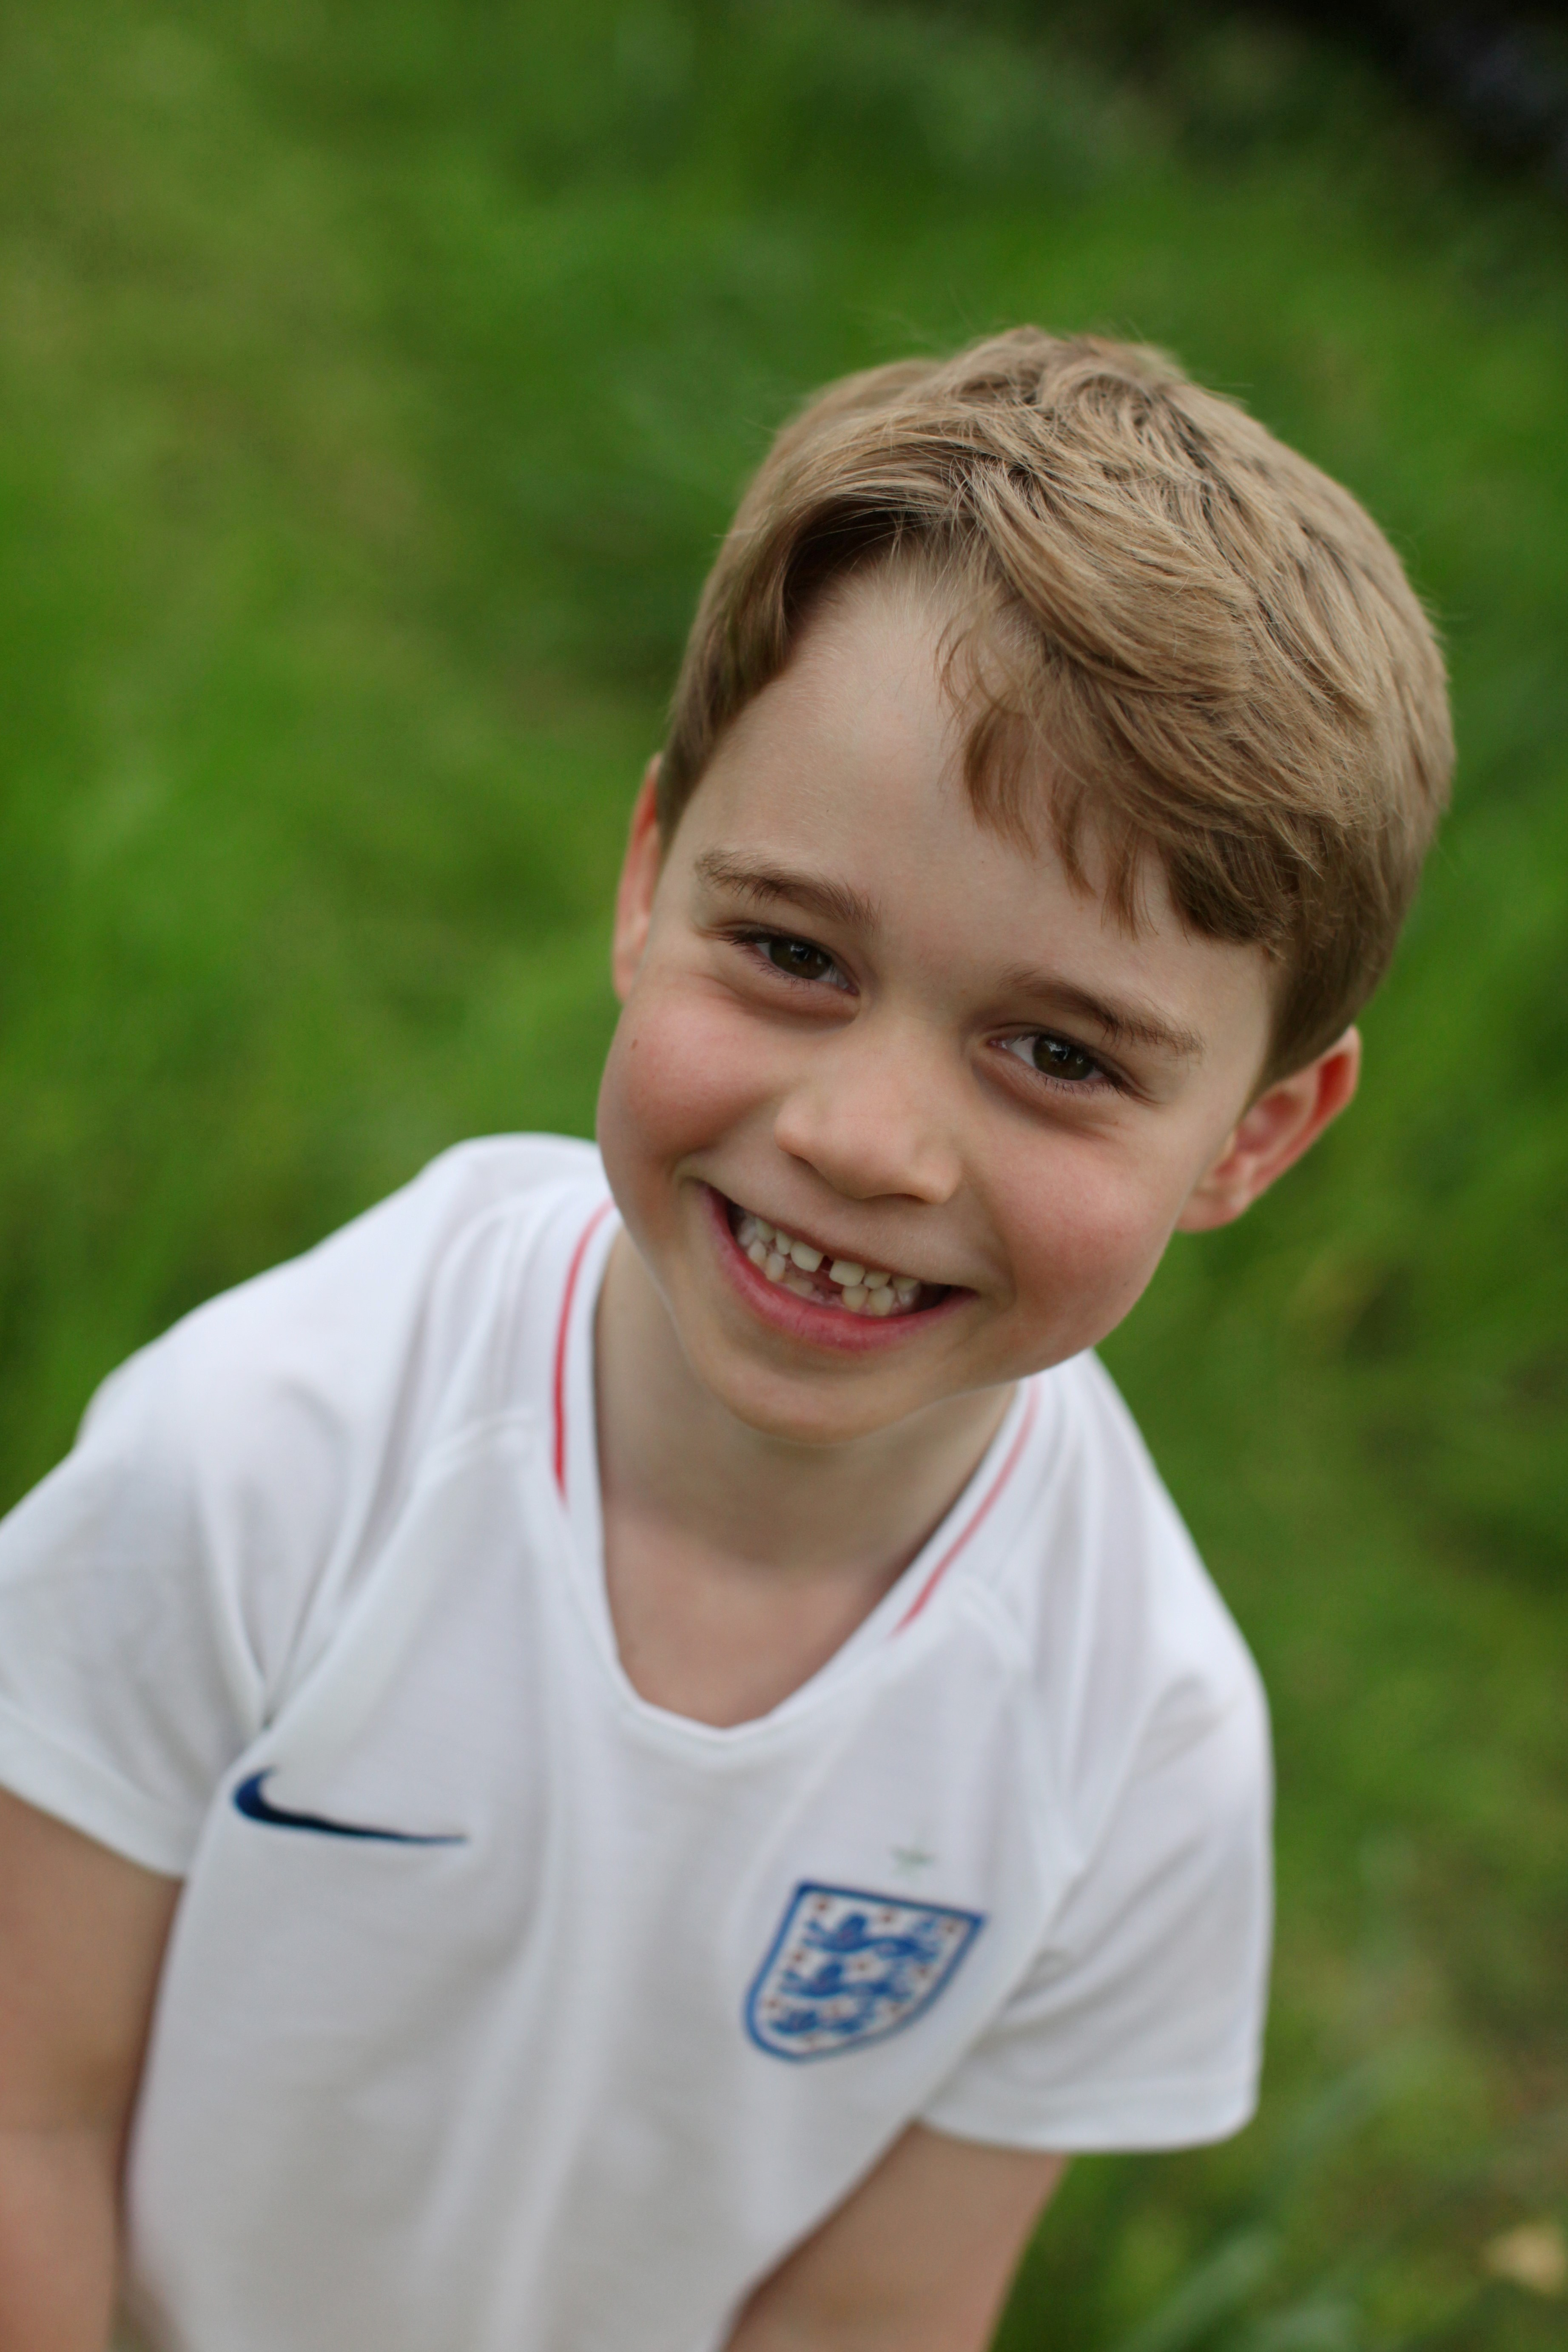 UK's royal family releases new photos of Prince George as he